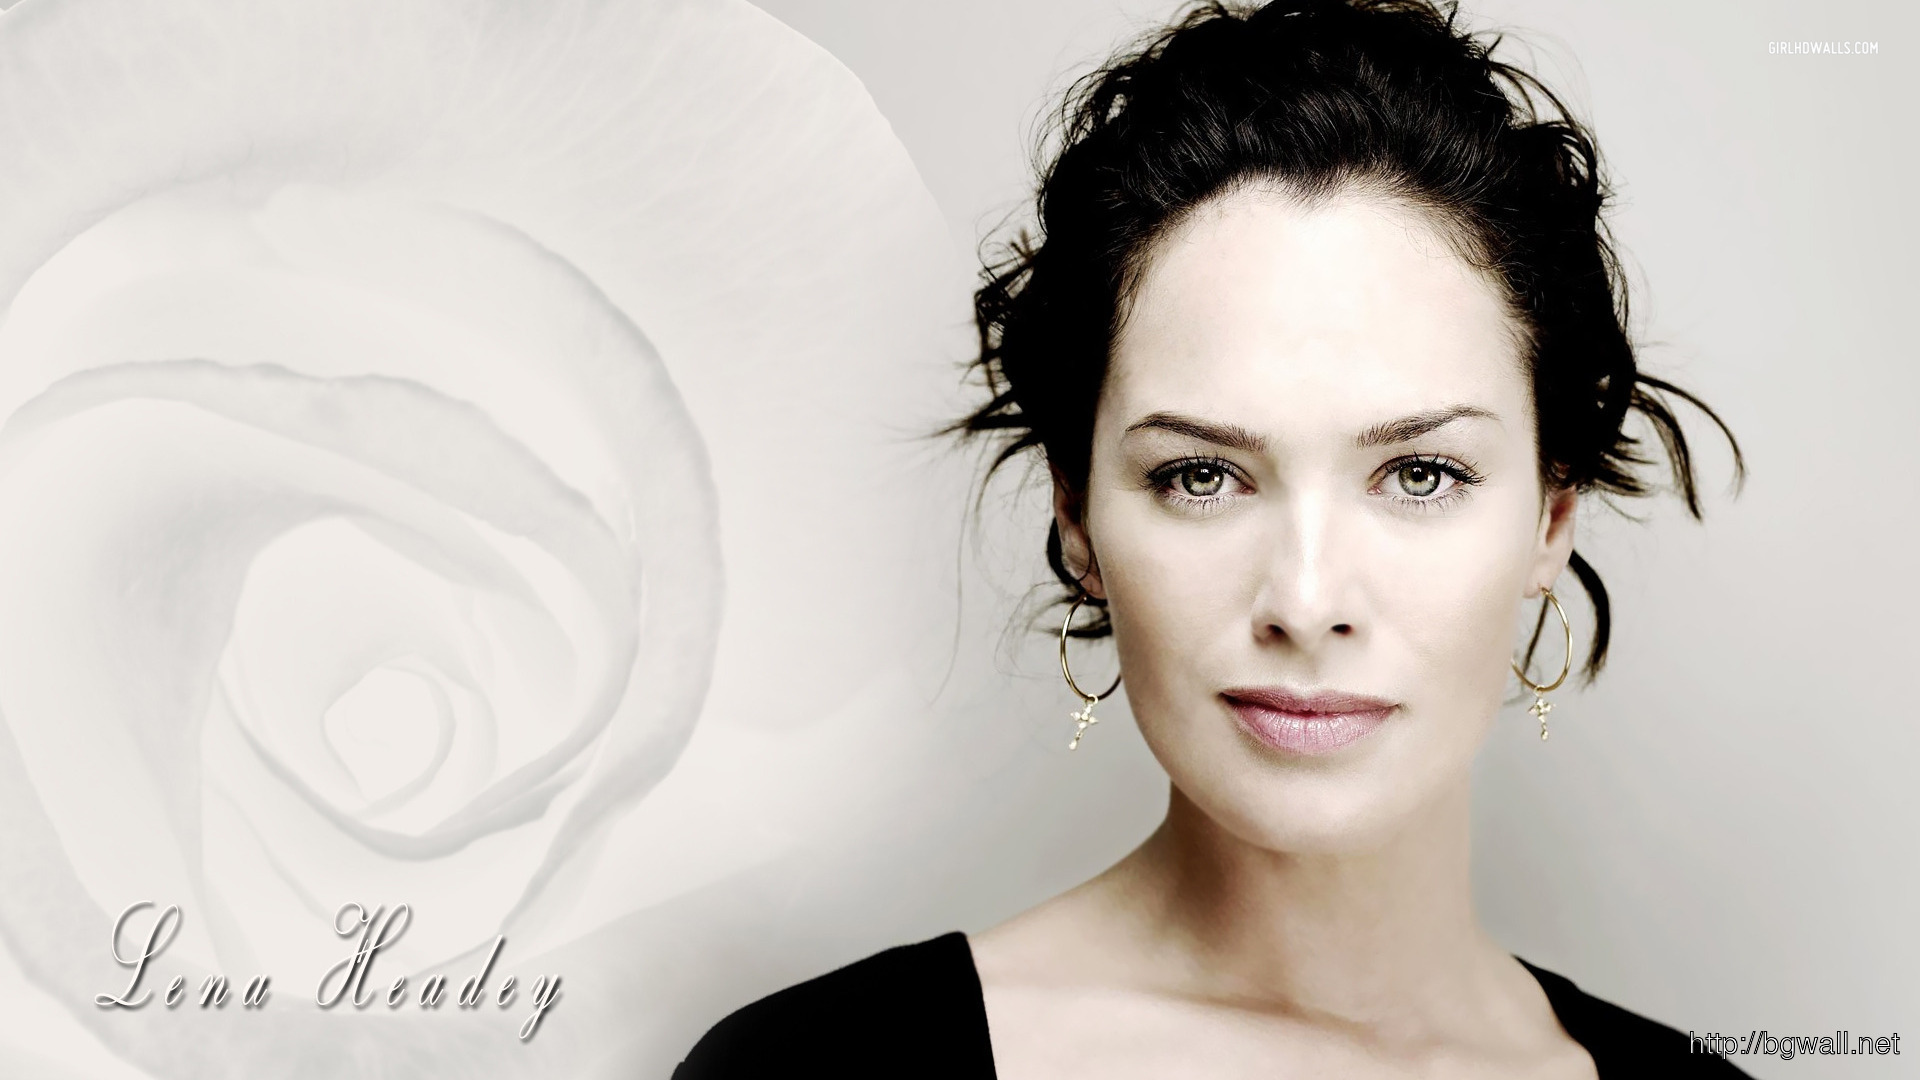 Lena Headey 1920x1080 Wallpaper